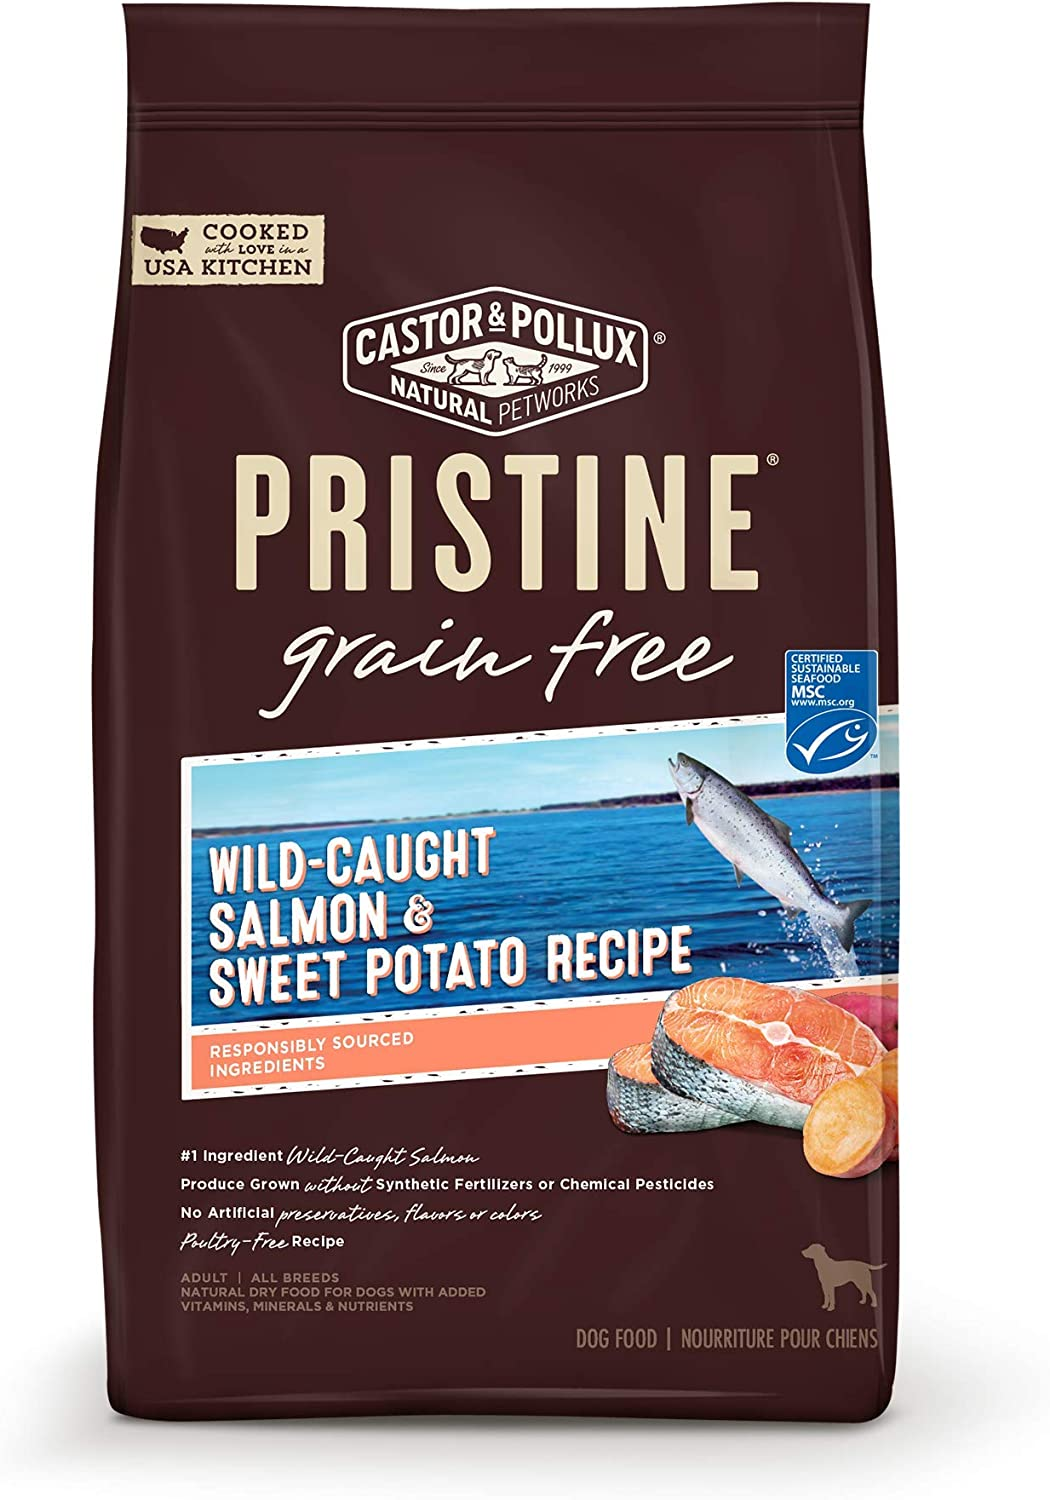 Pristine Wild-Caught Salmon & Sweet Potato Recipe, 4 lb